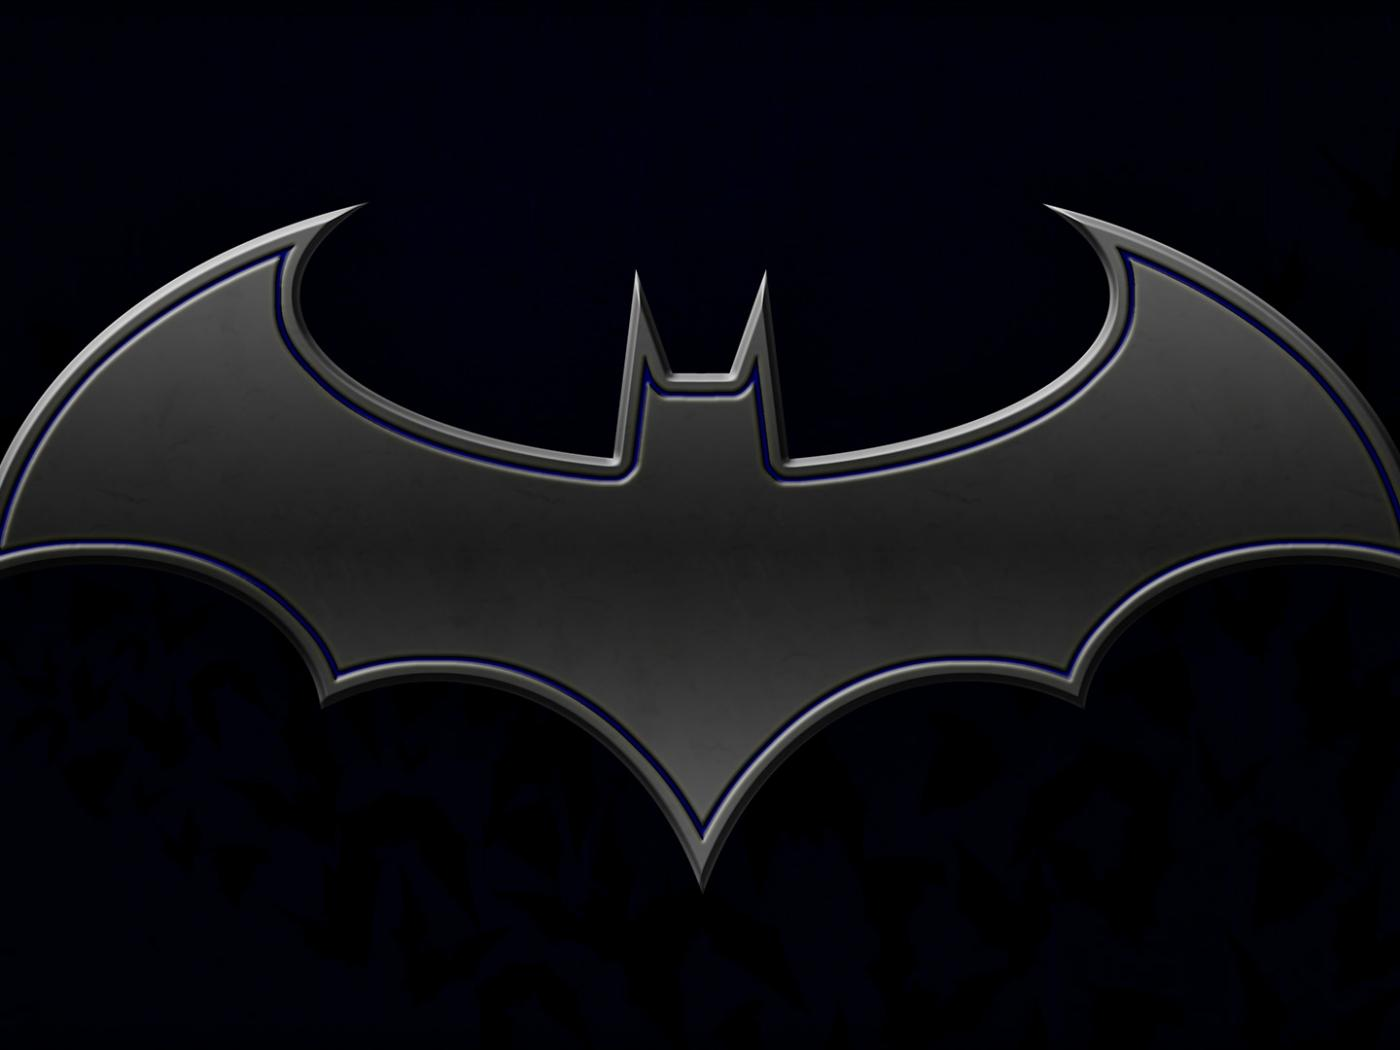 batman logo hd wallpaper   Background Wallpapers for your 1400x1050